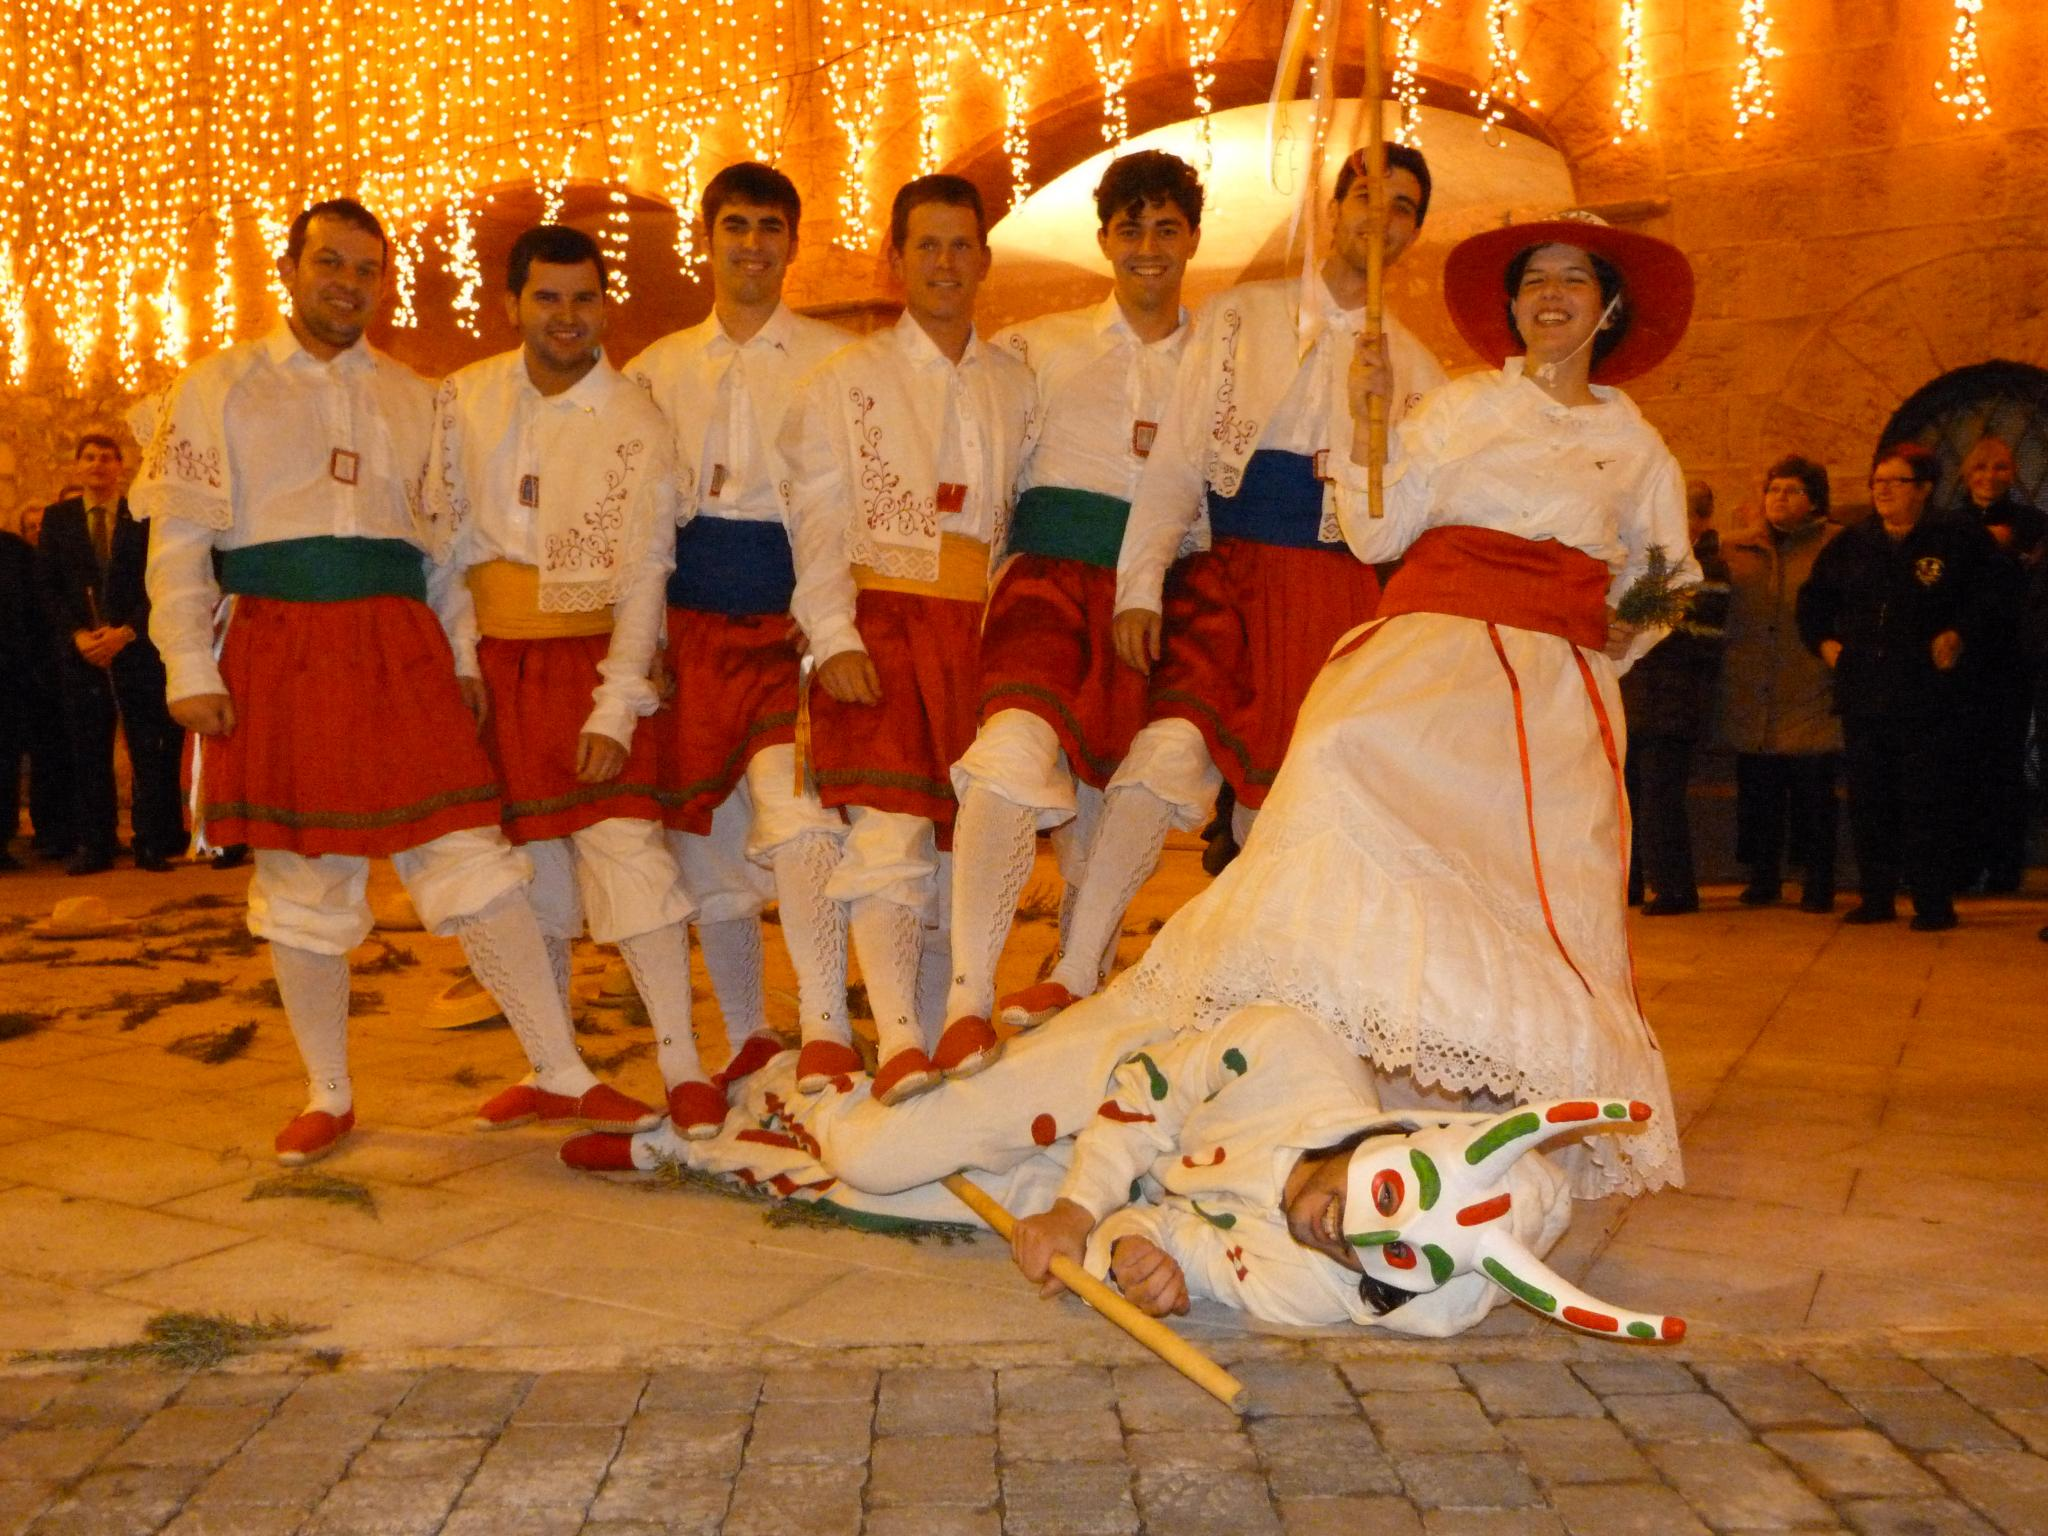 Sant Julia celebrations in Campos